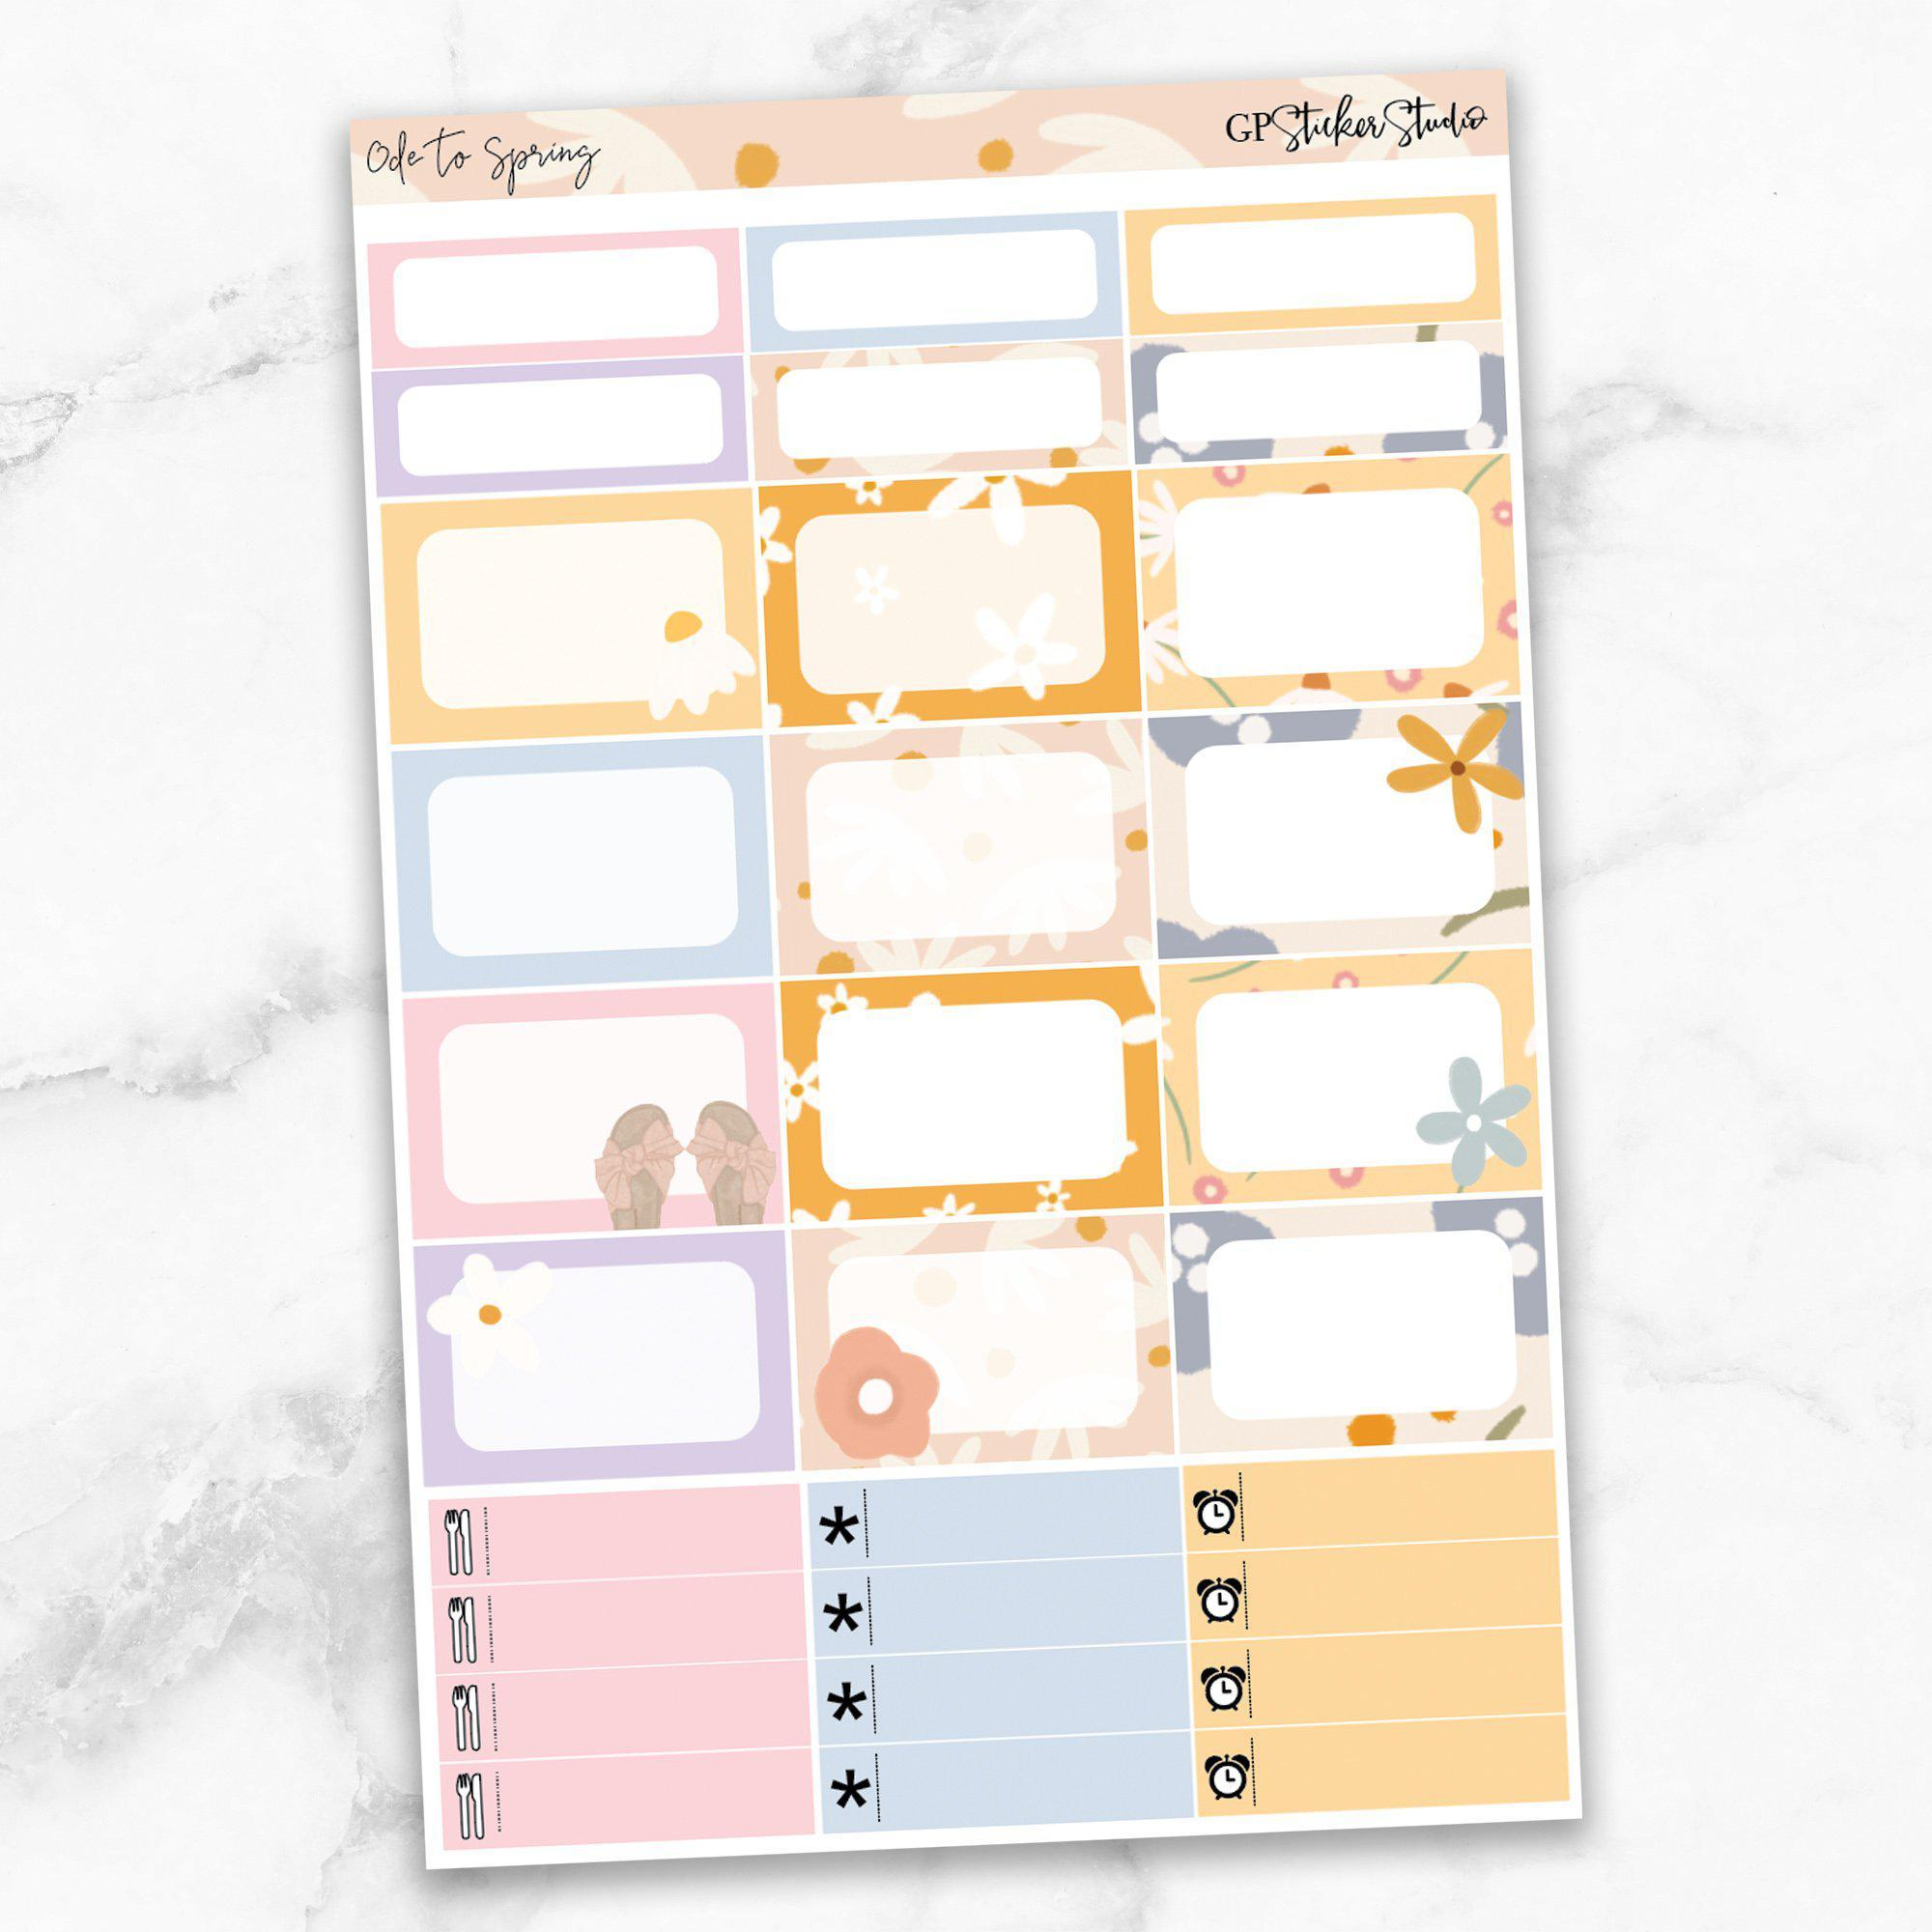 ODE TO SPRING Half Boxes Planner Stickers-The GP Studio